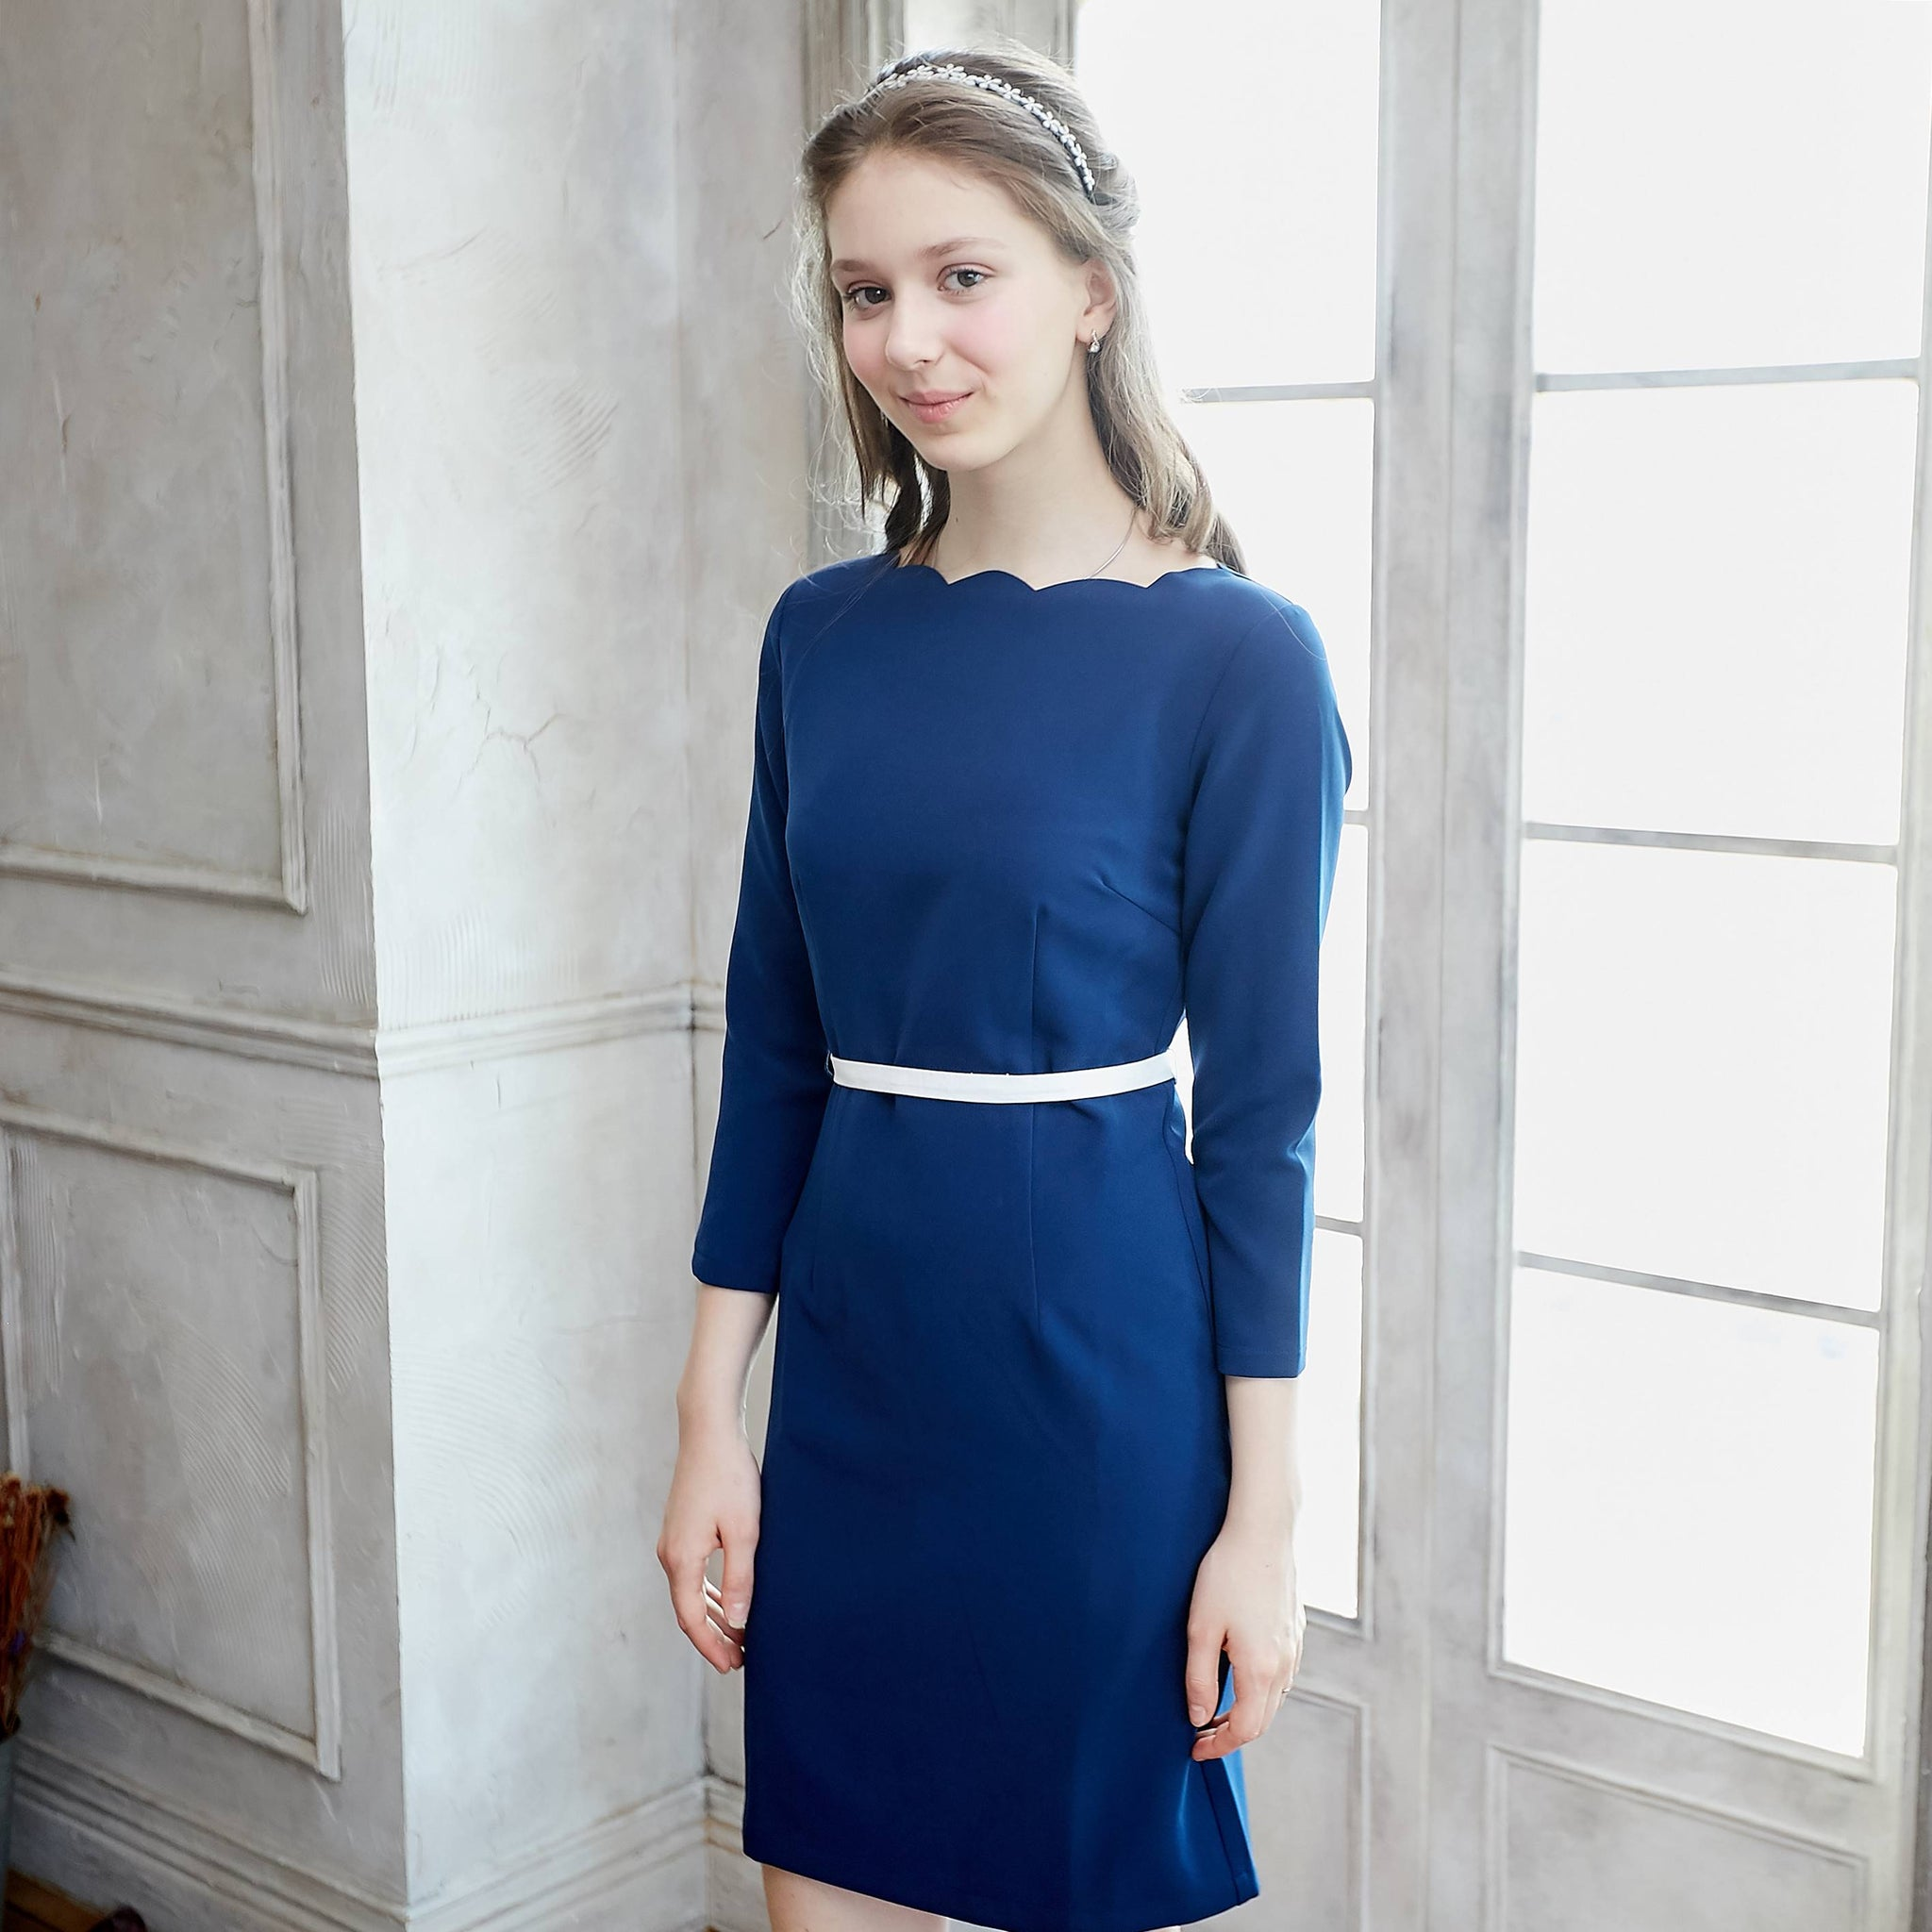 (Woman) Tip the Scallops Navy Blue Dress (Two removable self-tie sashes included) - Bunny n Bloom Mommy & Me Dress